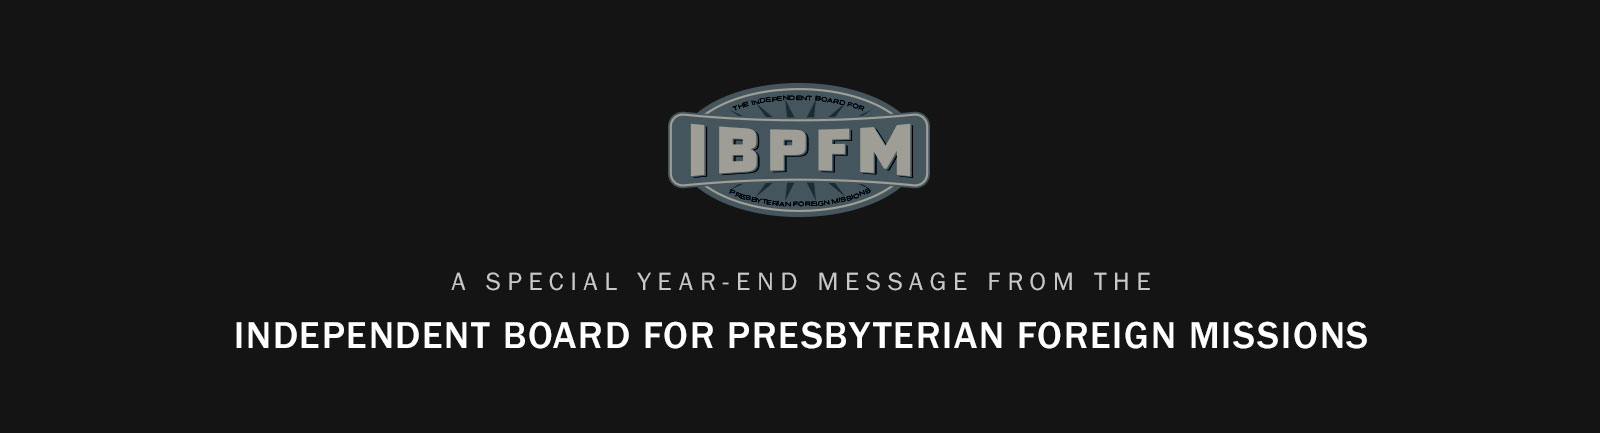 A Special Message from the Independent Board of Presbyterian Foreign Missions